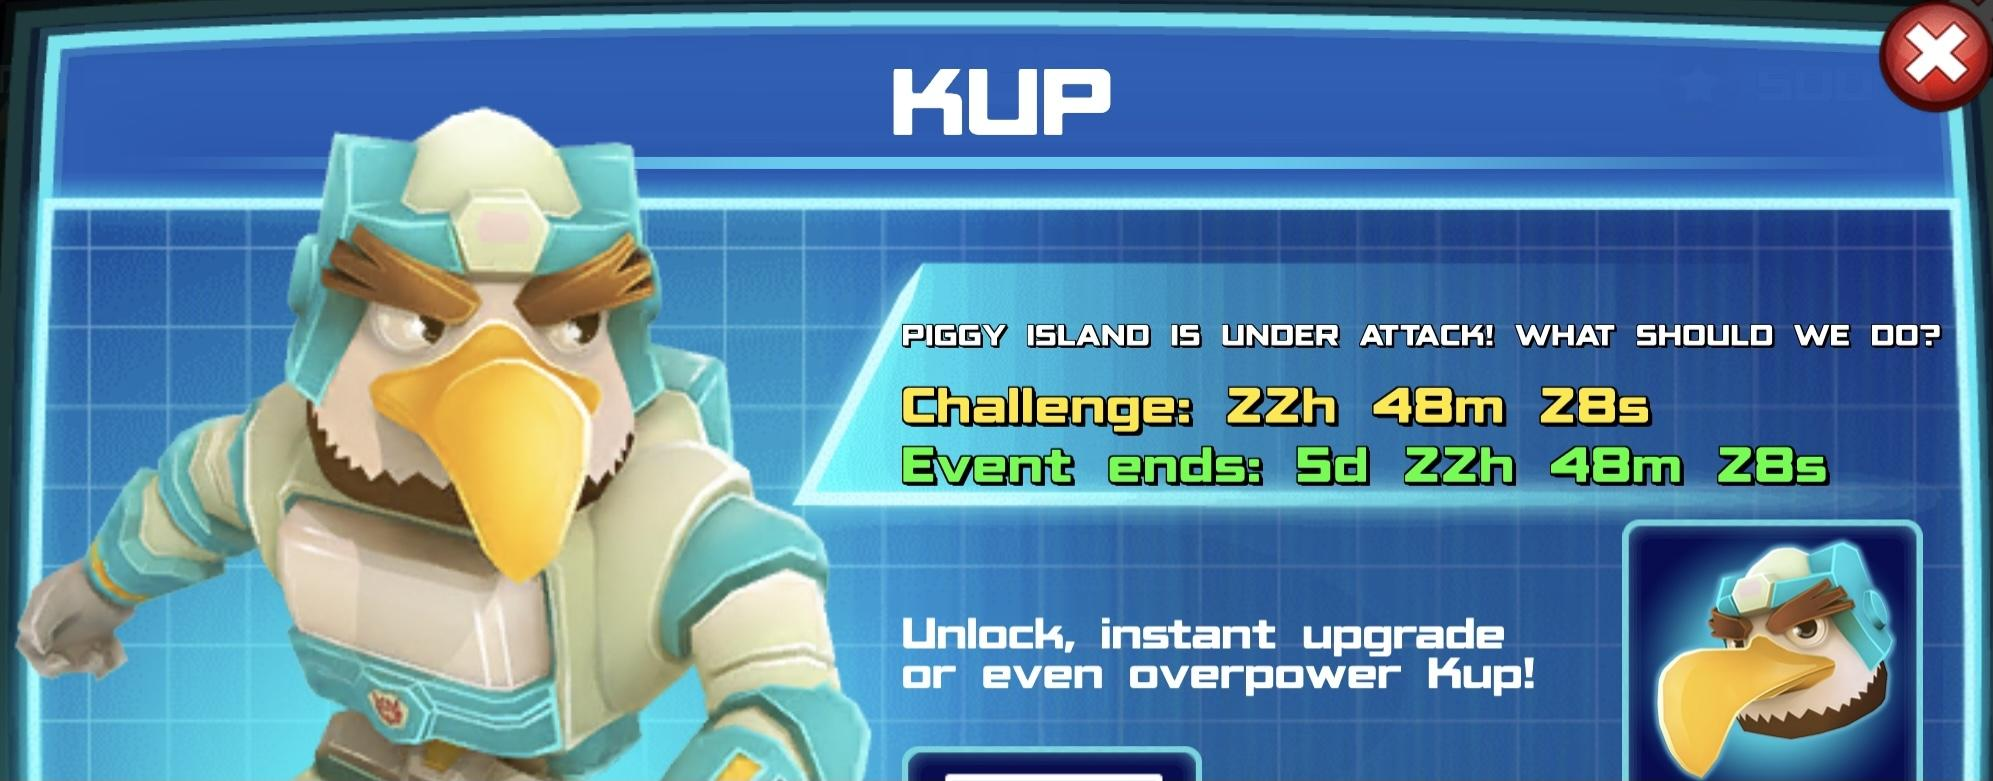 The event banner for Kup